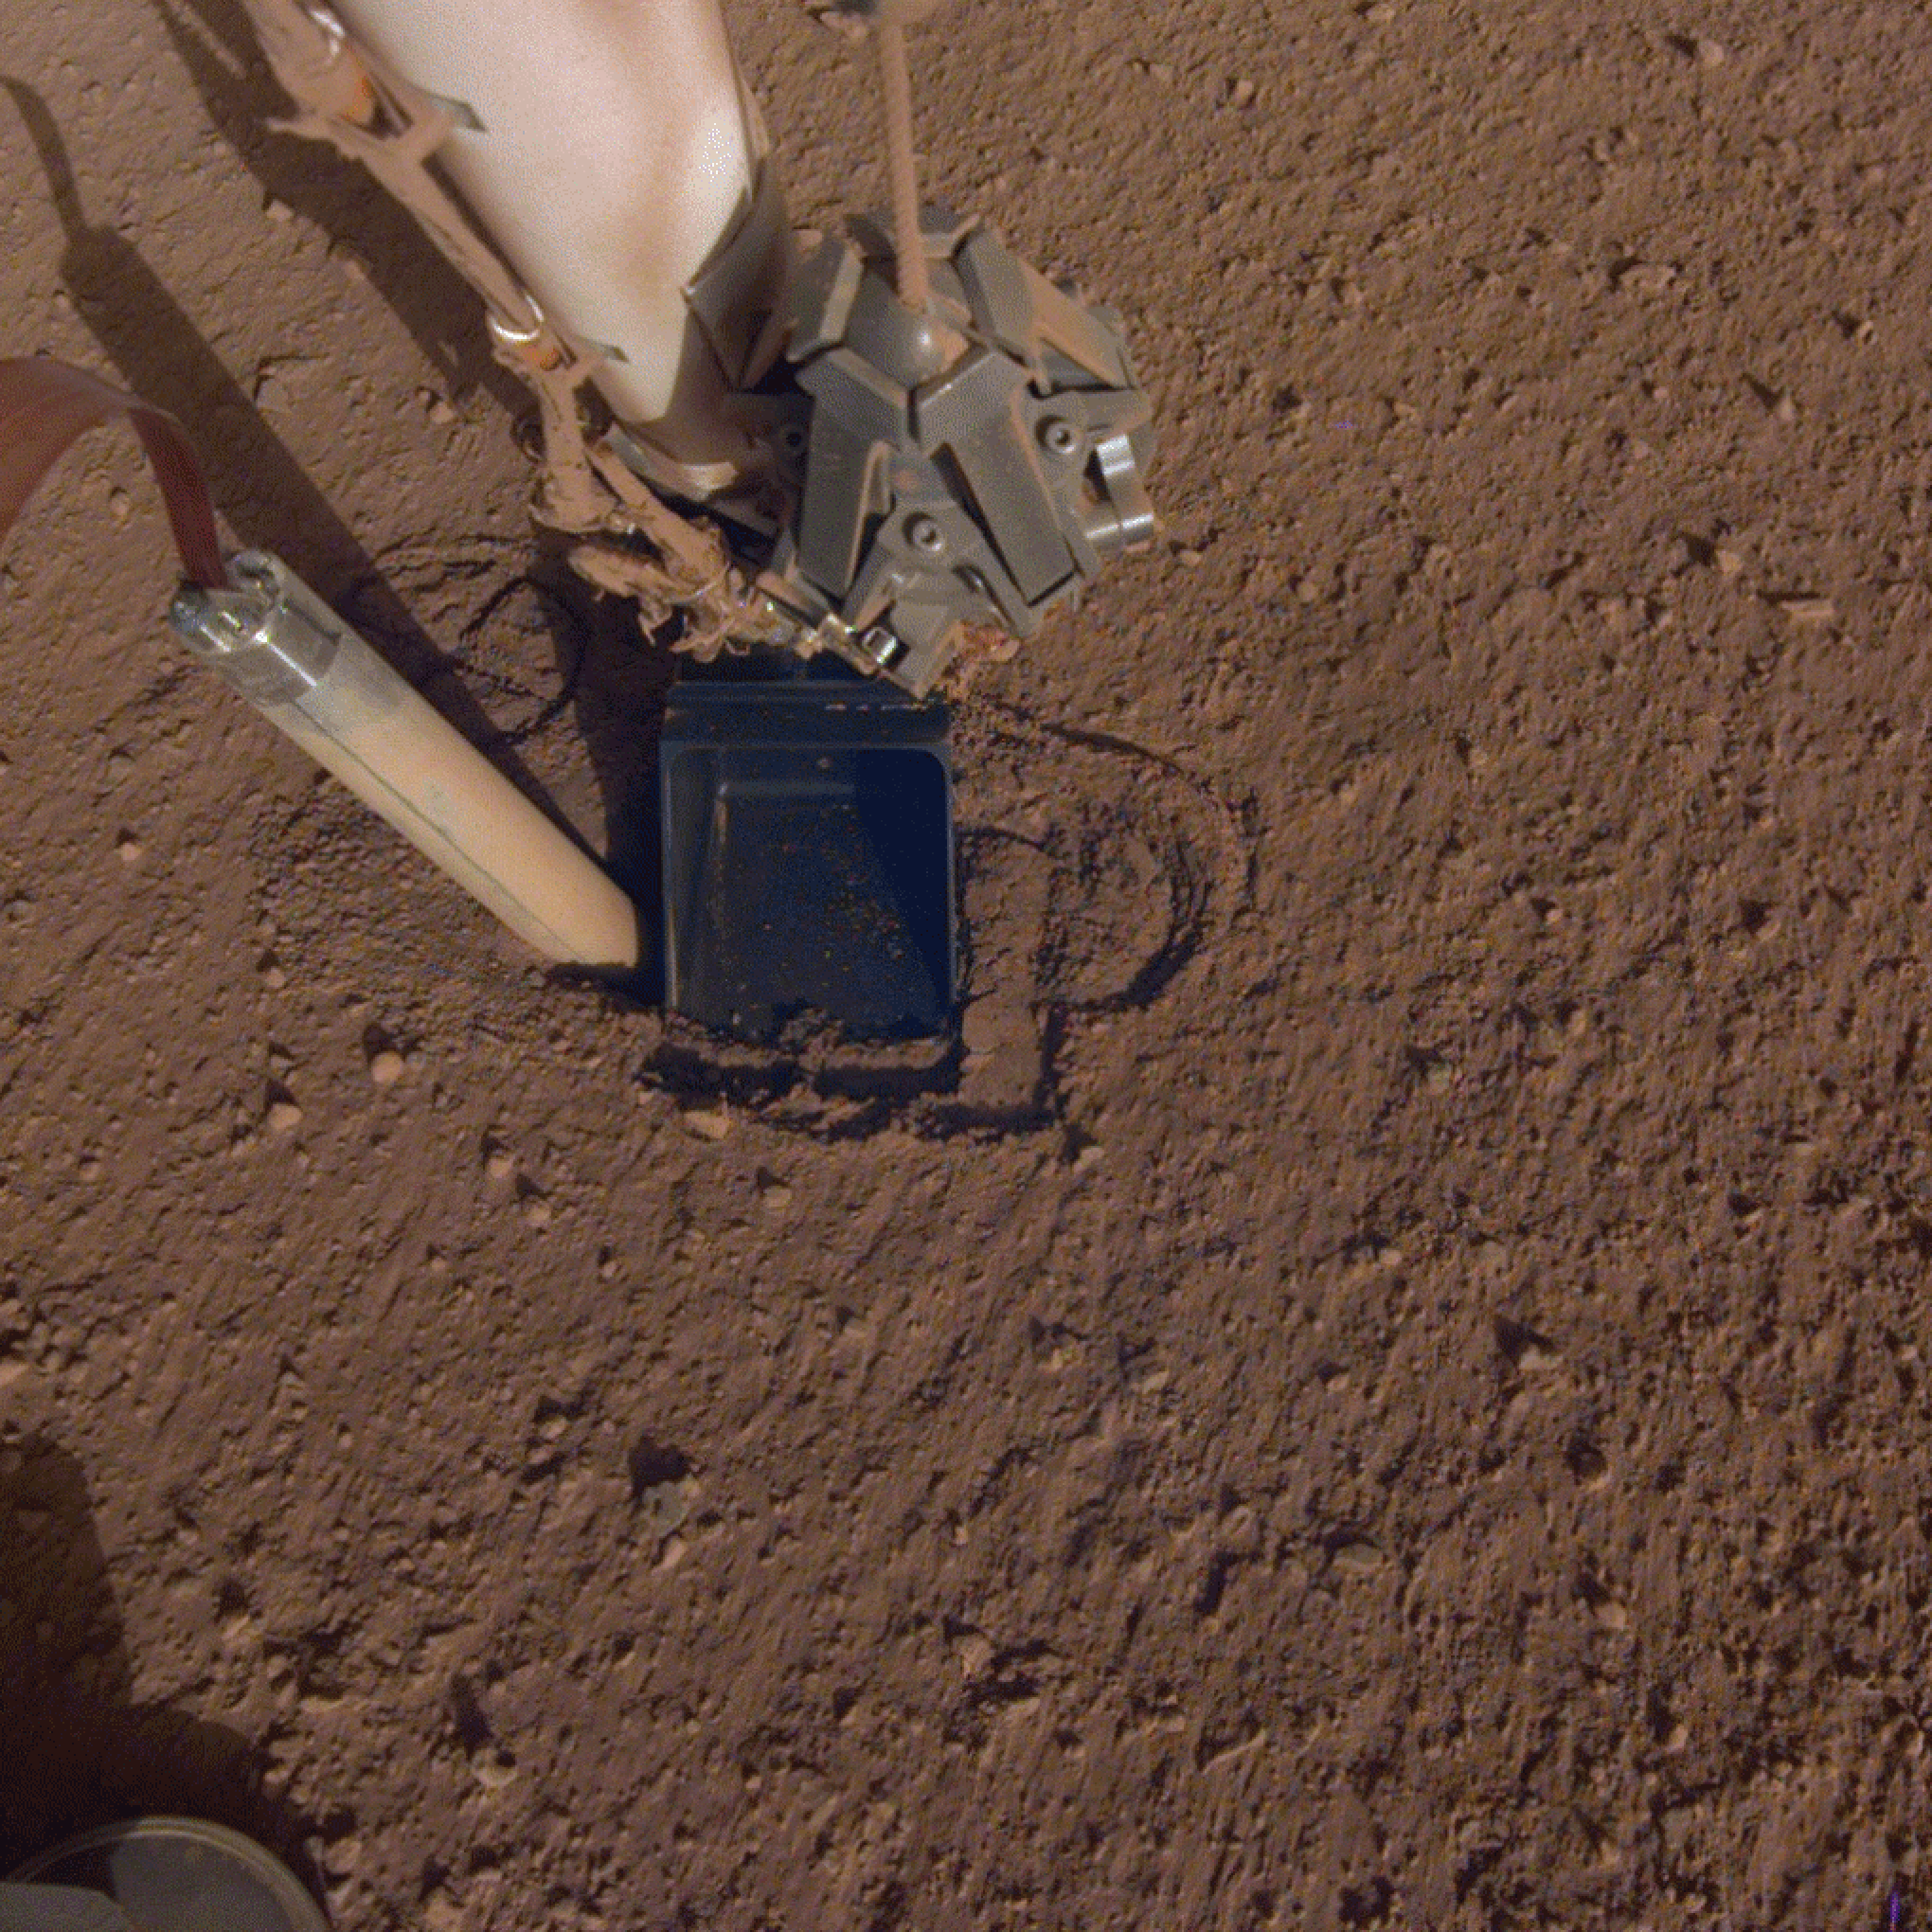 Mars: Are There Insects on the Red Planet?